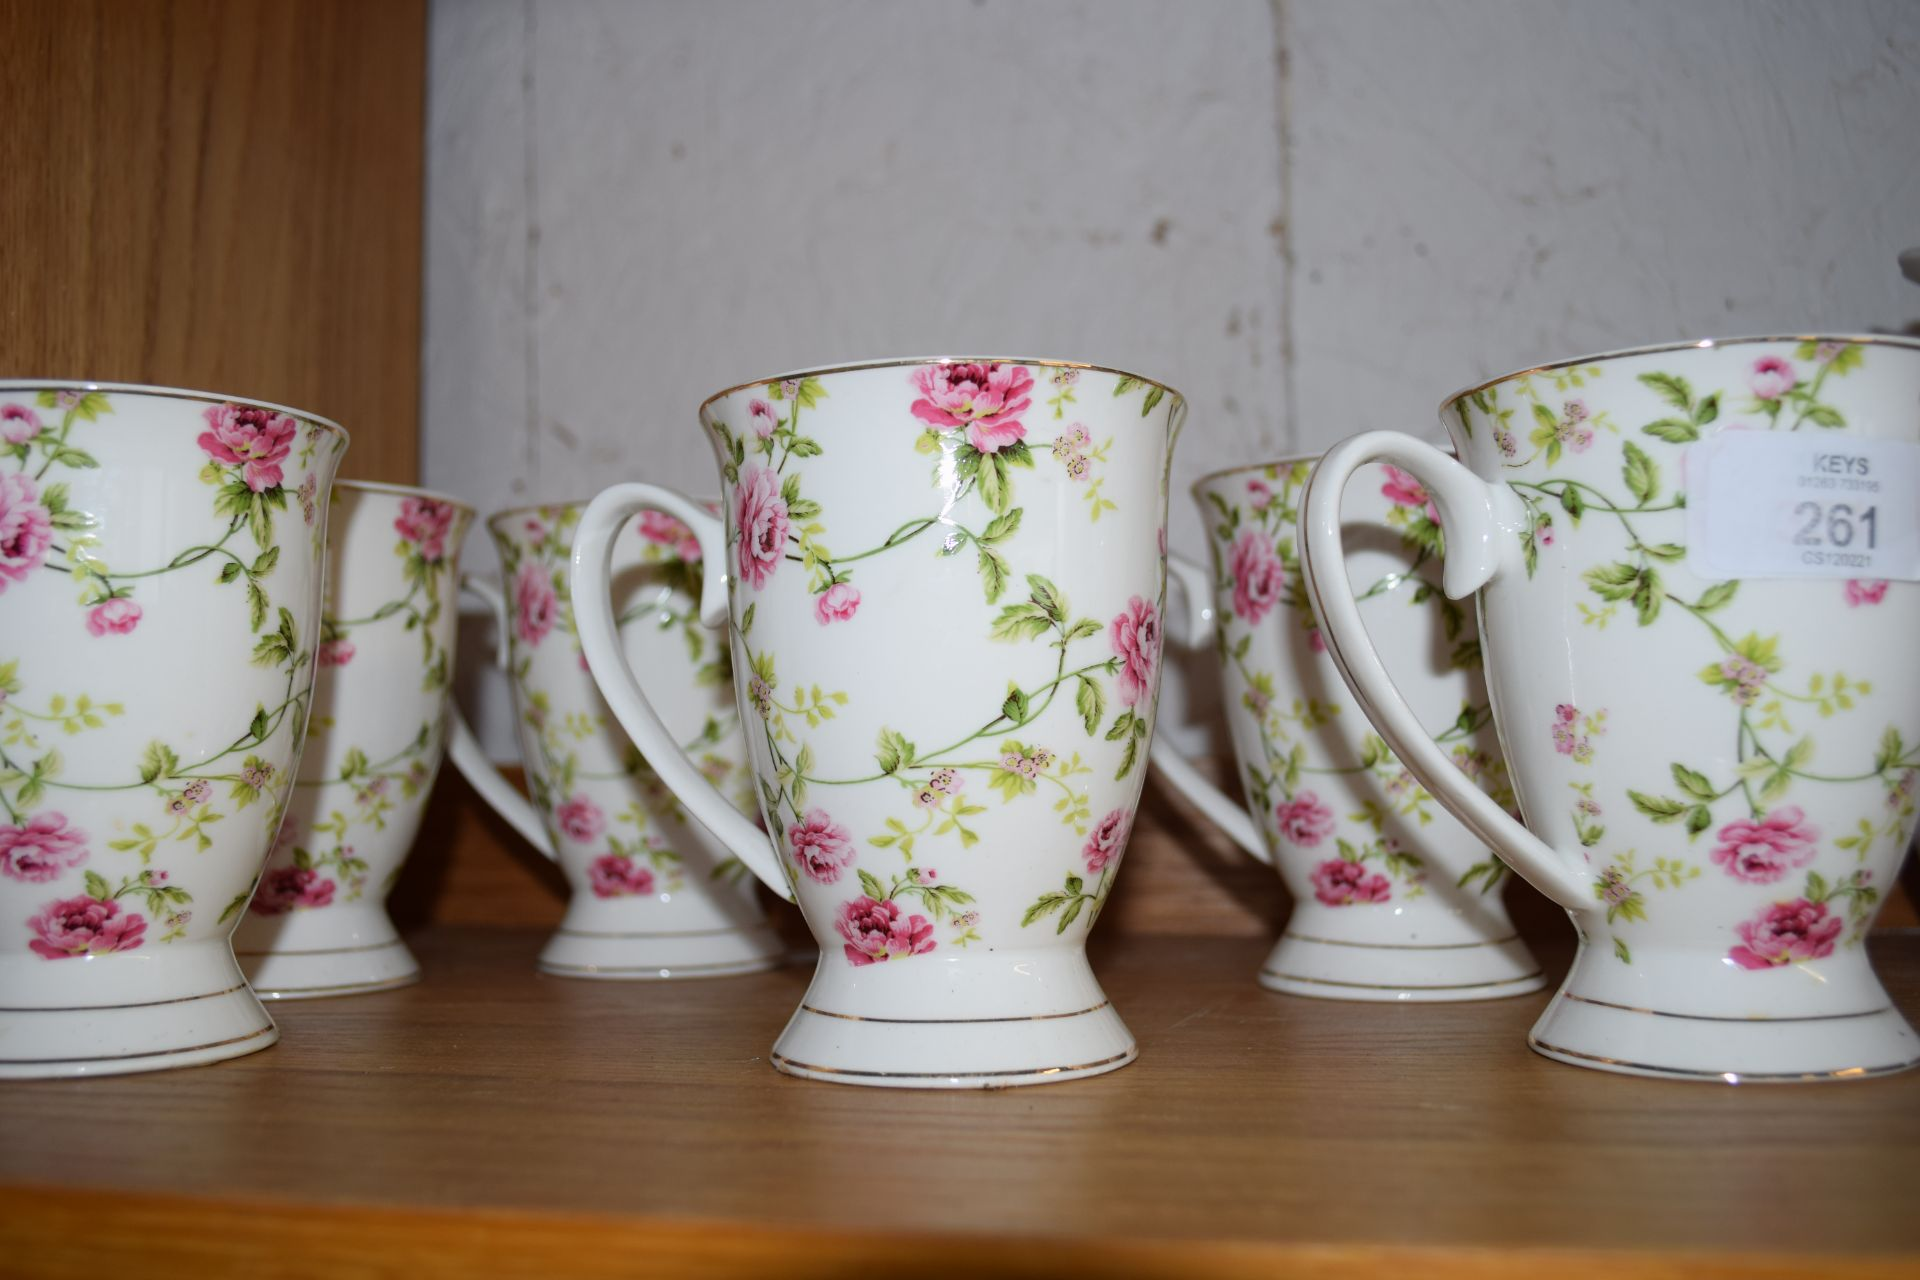 SET OF SIX FLORAL DECORATED MUGS BY CLAYRE & EEF